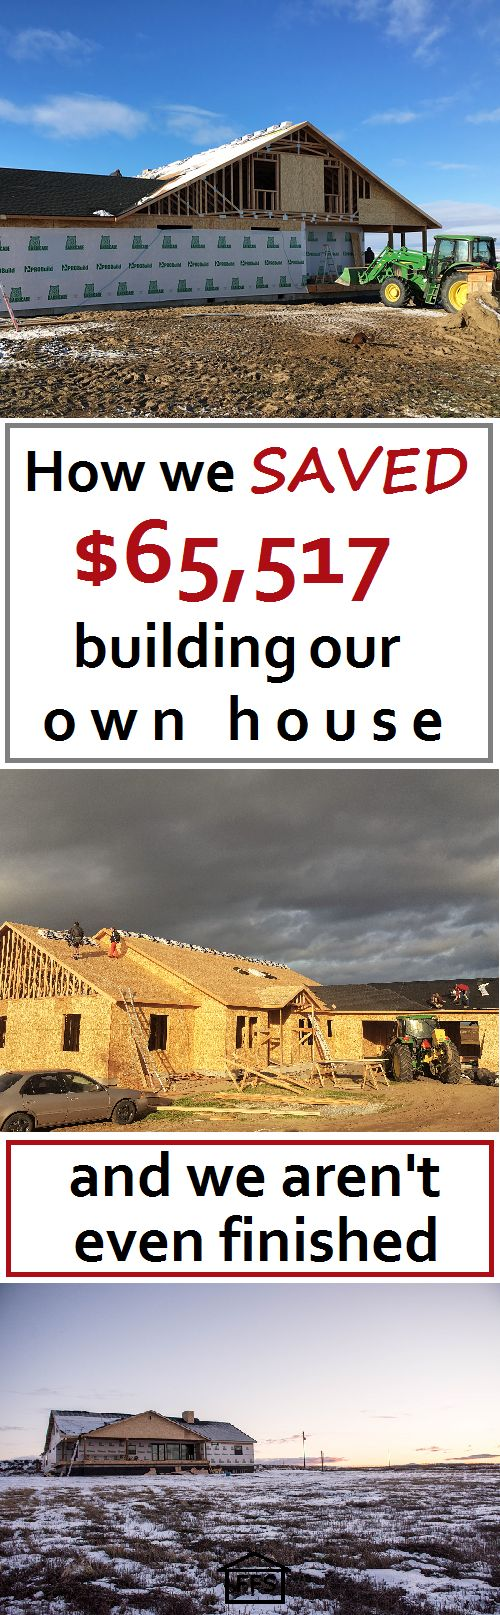 How We Saved $65,517 Building Our Own House, And We Aren't Even Finished